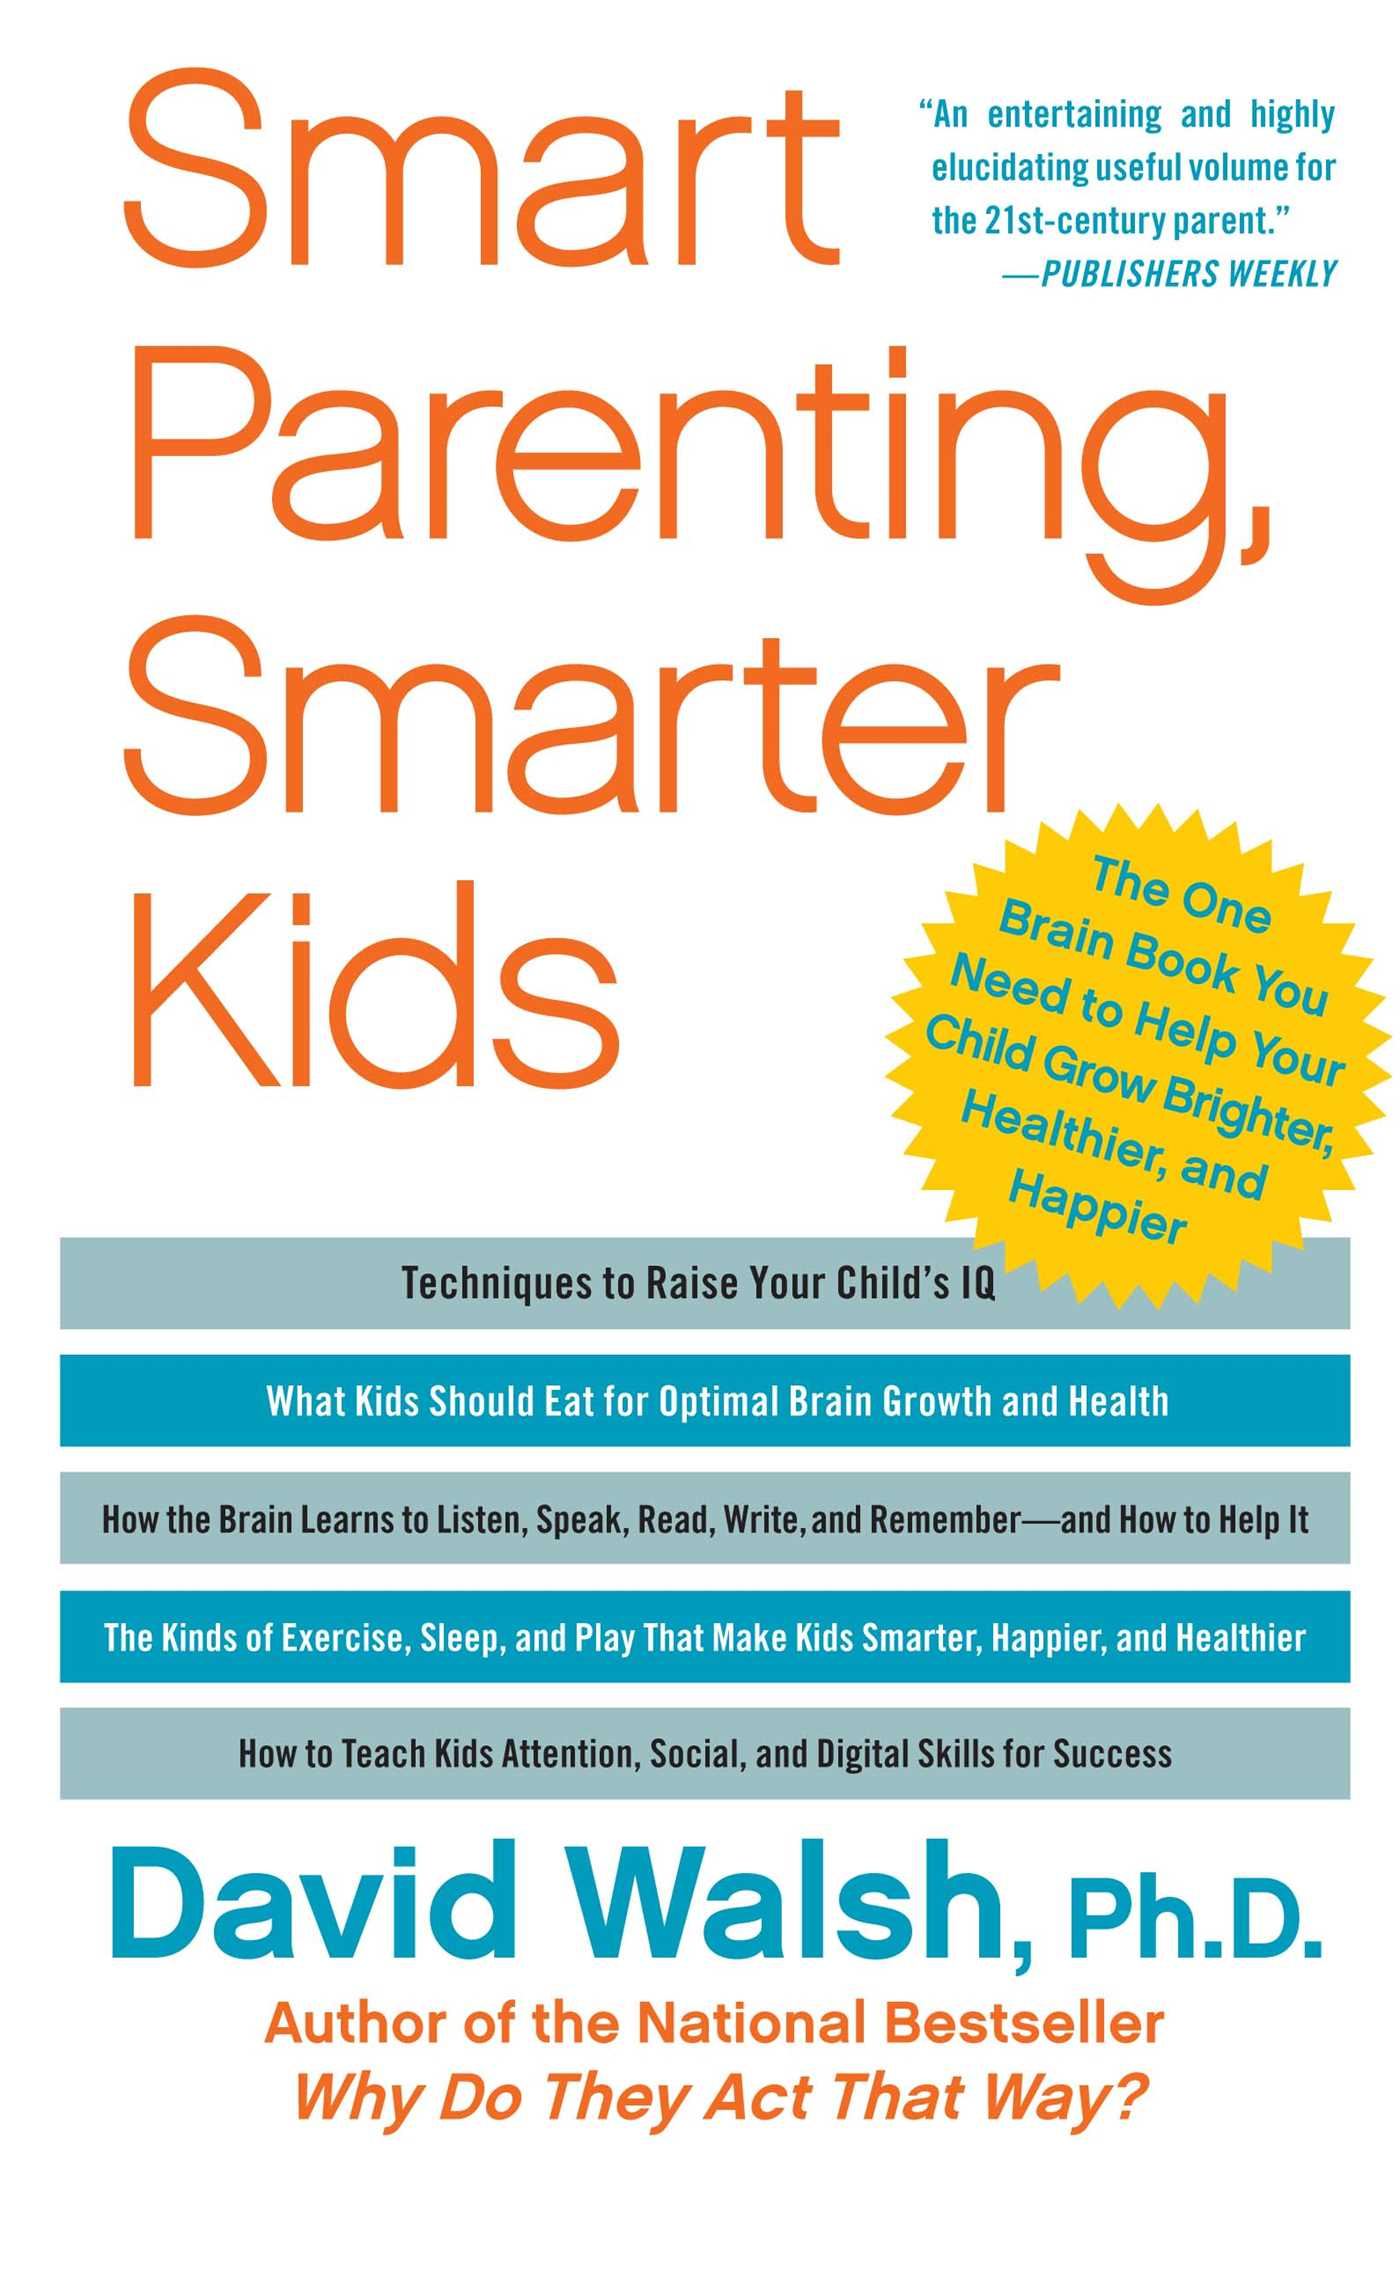 Smart parenting smarter kids 9781439121191 hr